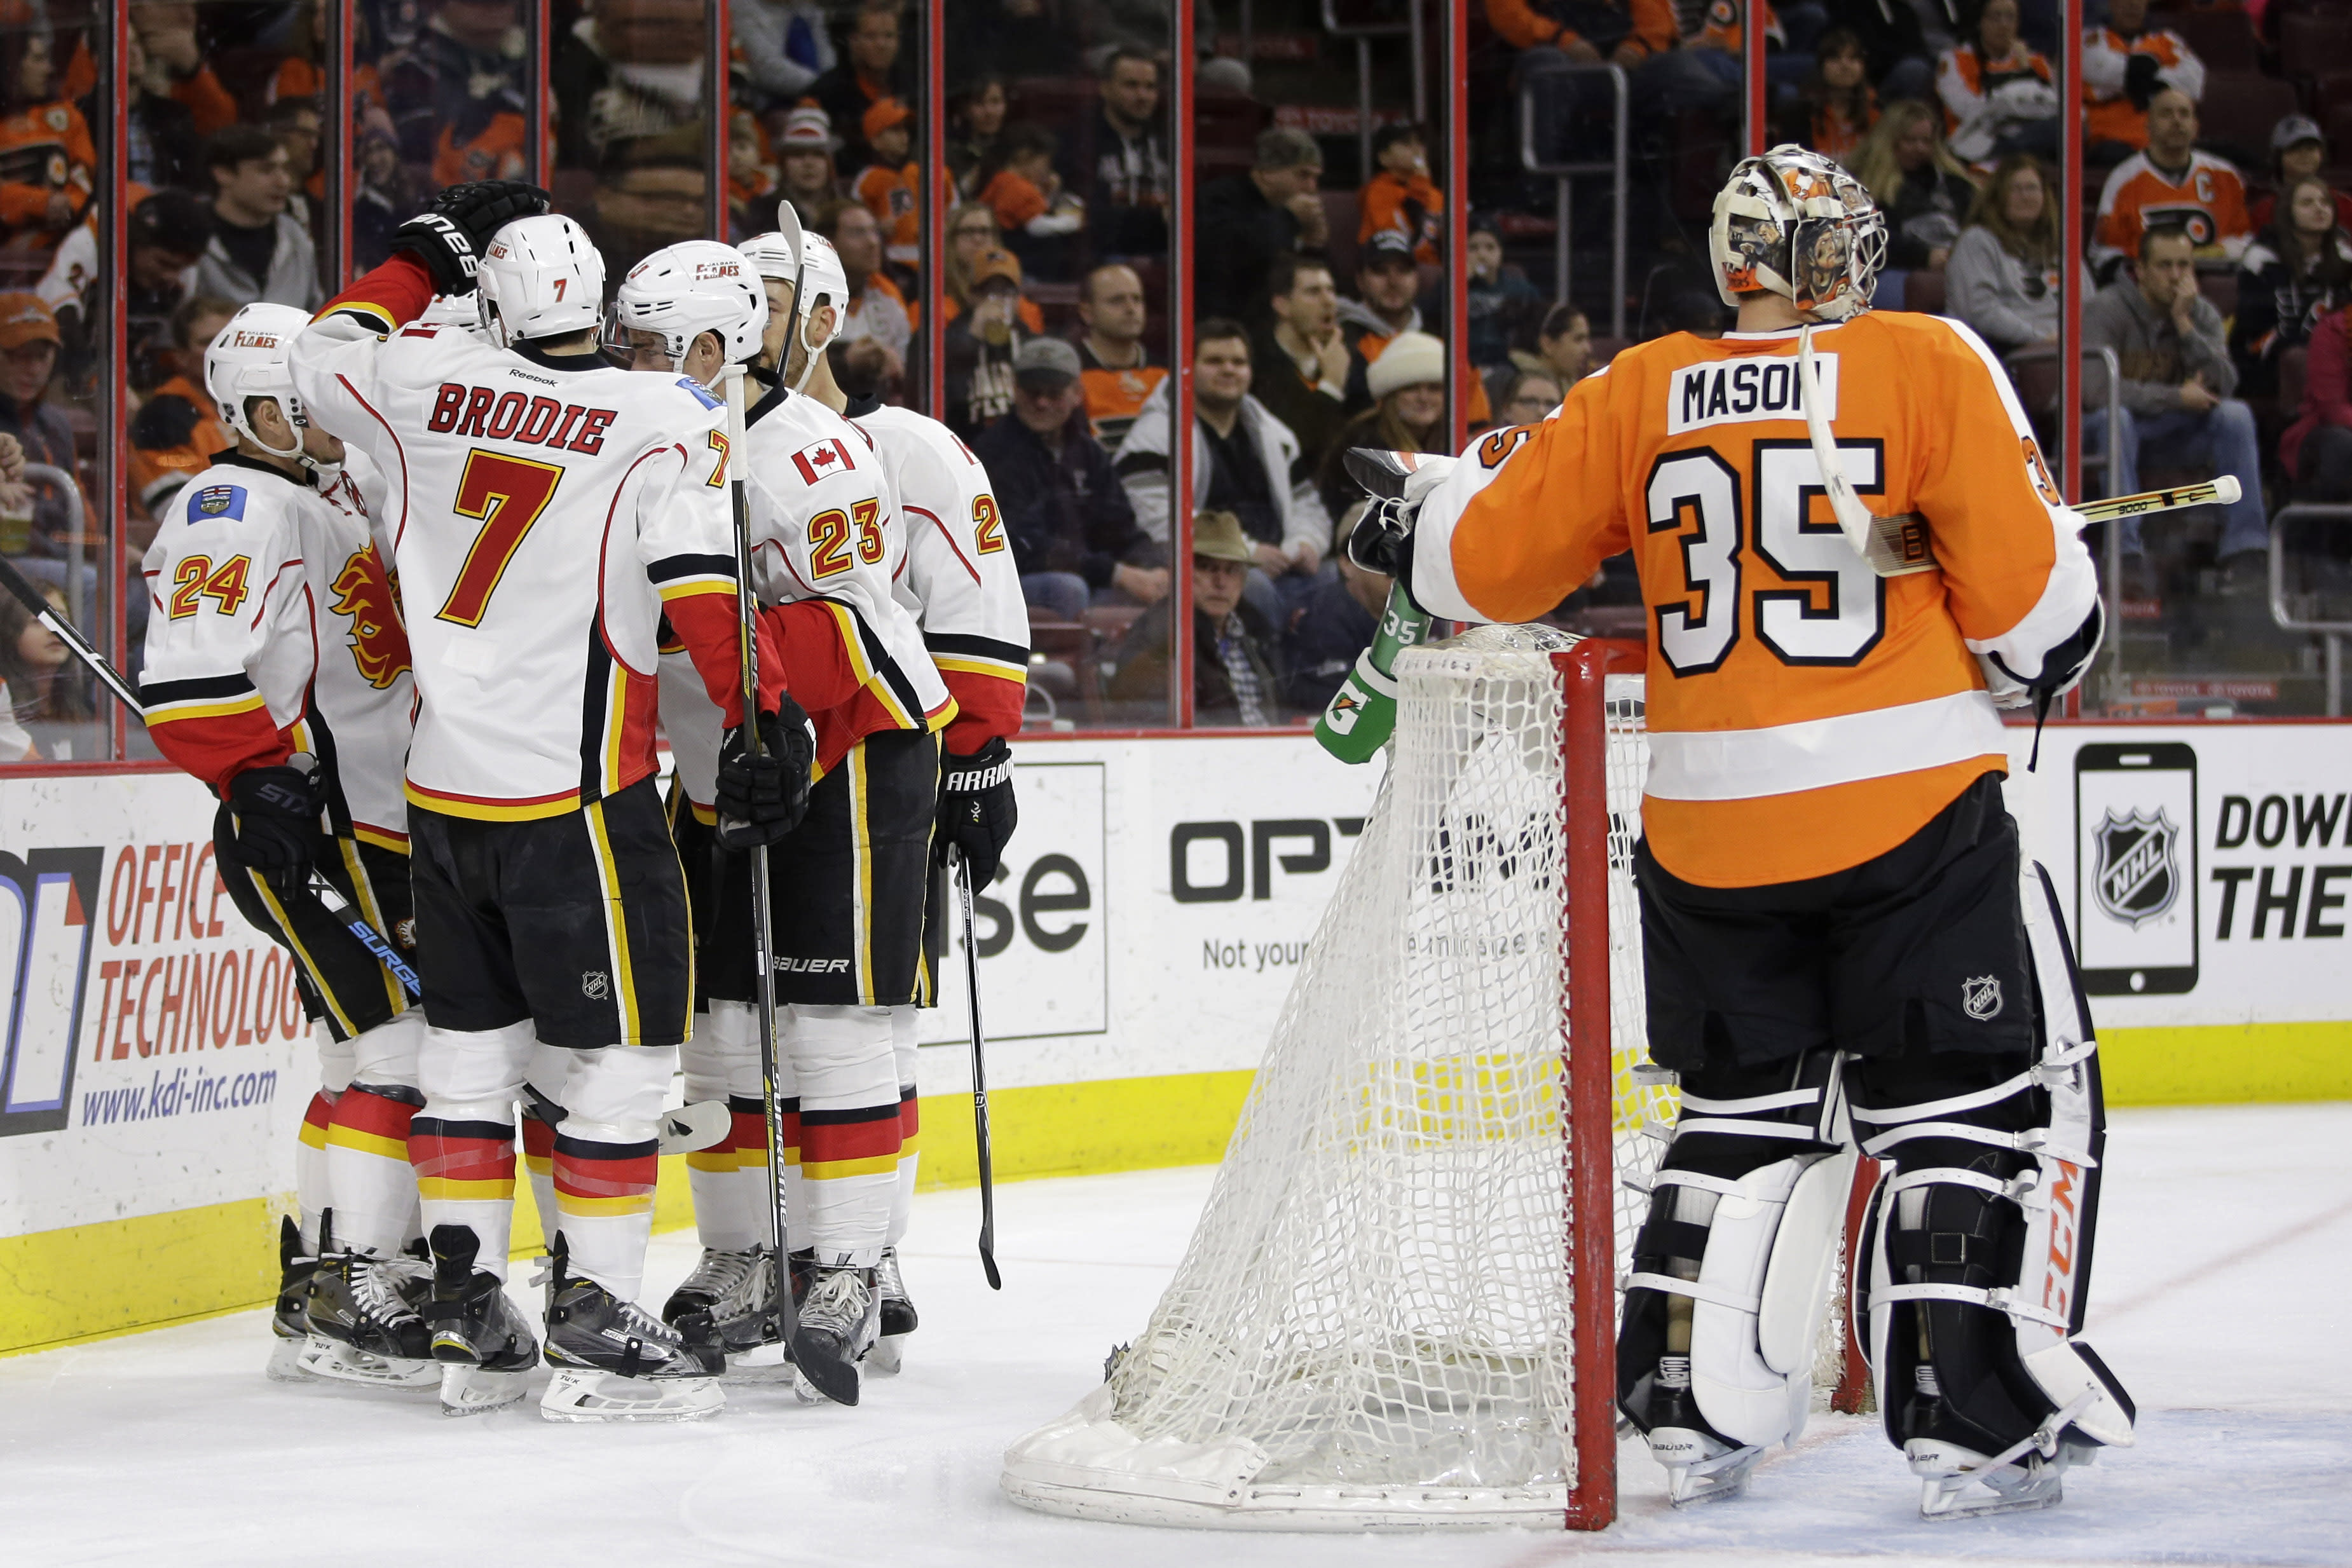 Hudler scores in OT to give Flames 3-2 win over Flyers